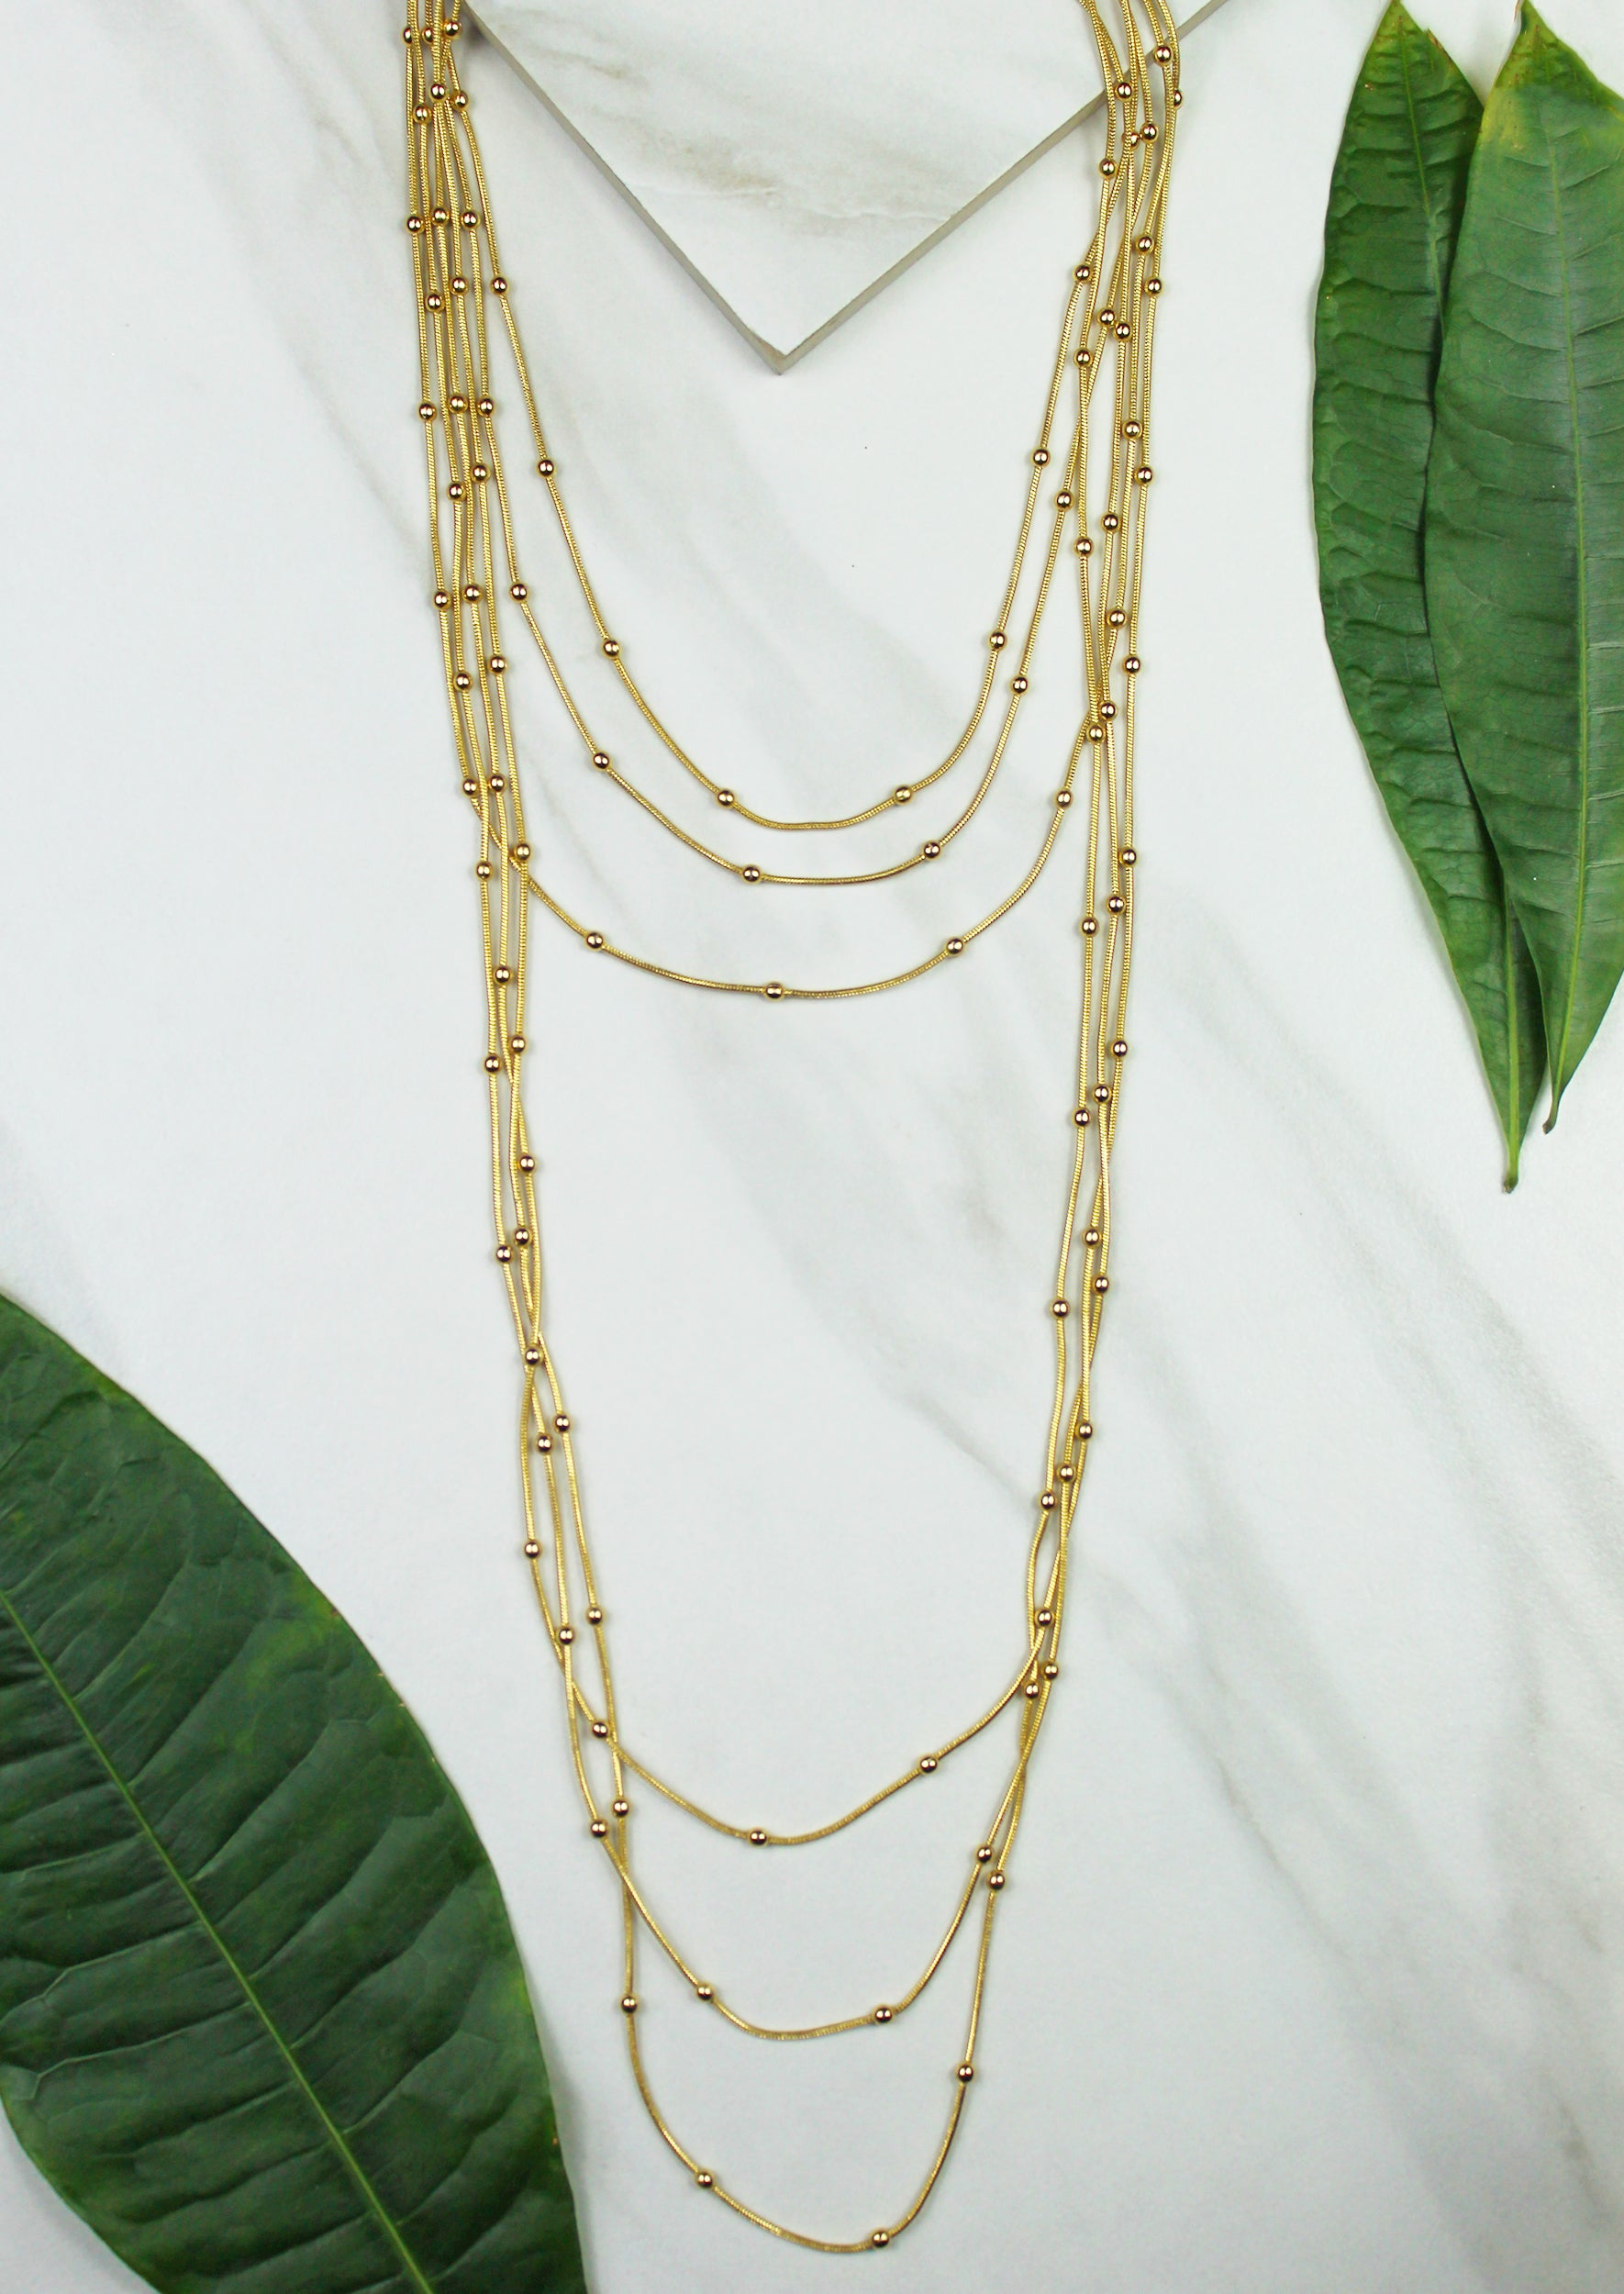 Aida Layered Necklace - Jules Smith - 14K Gold Plated - Boho Jewelry